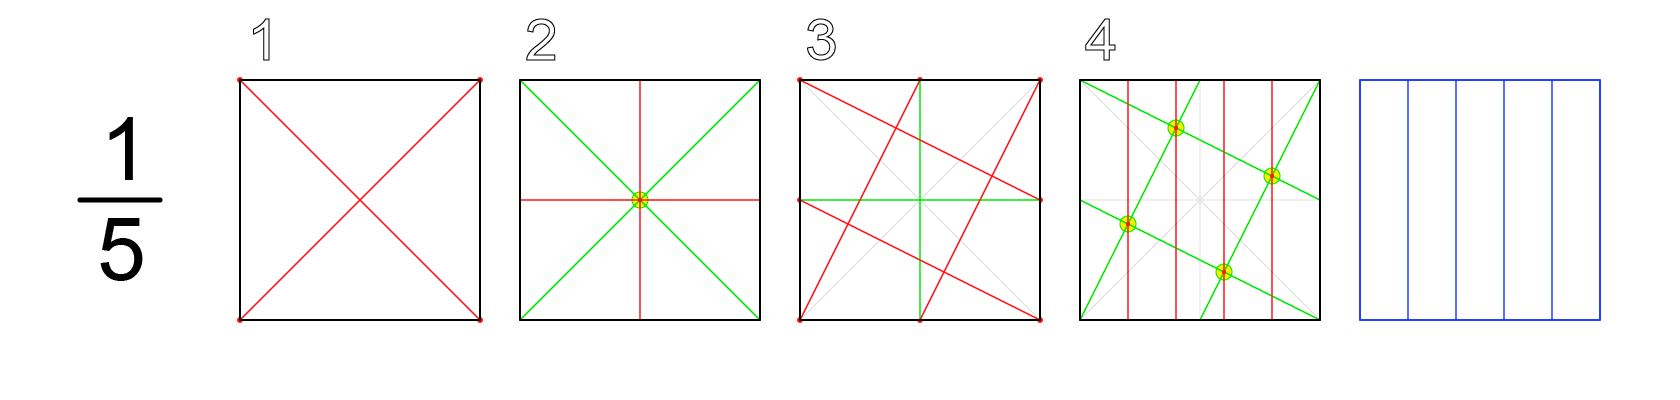 How To Divide A Circle Into 20 Equal Parts